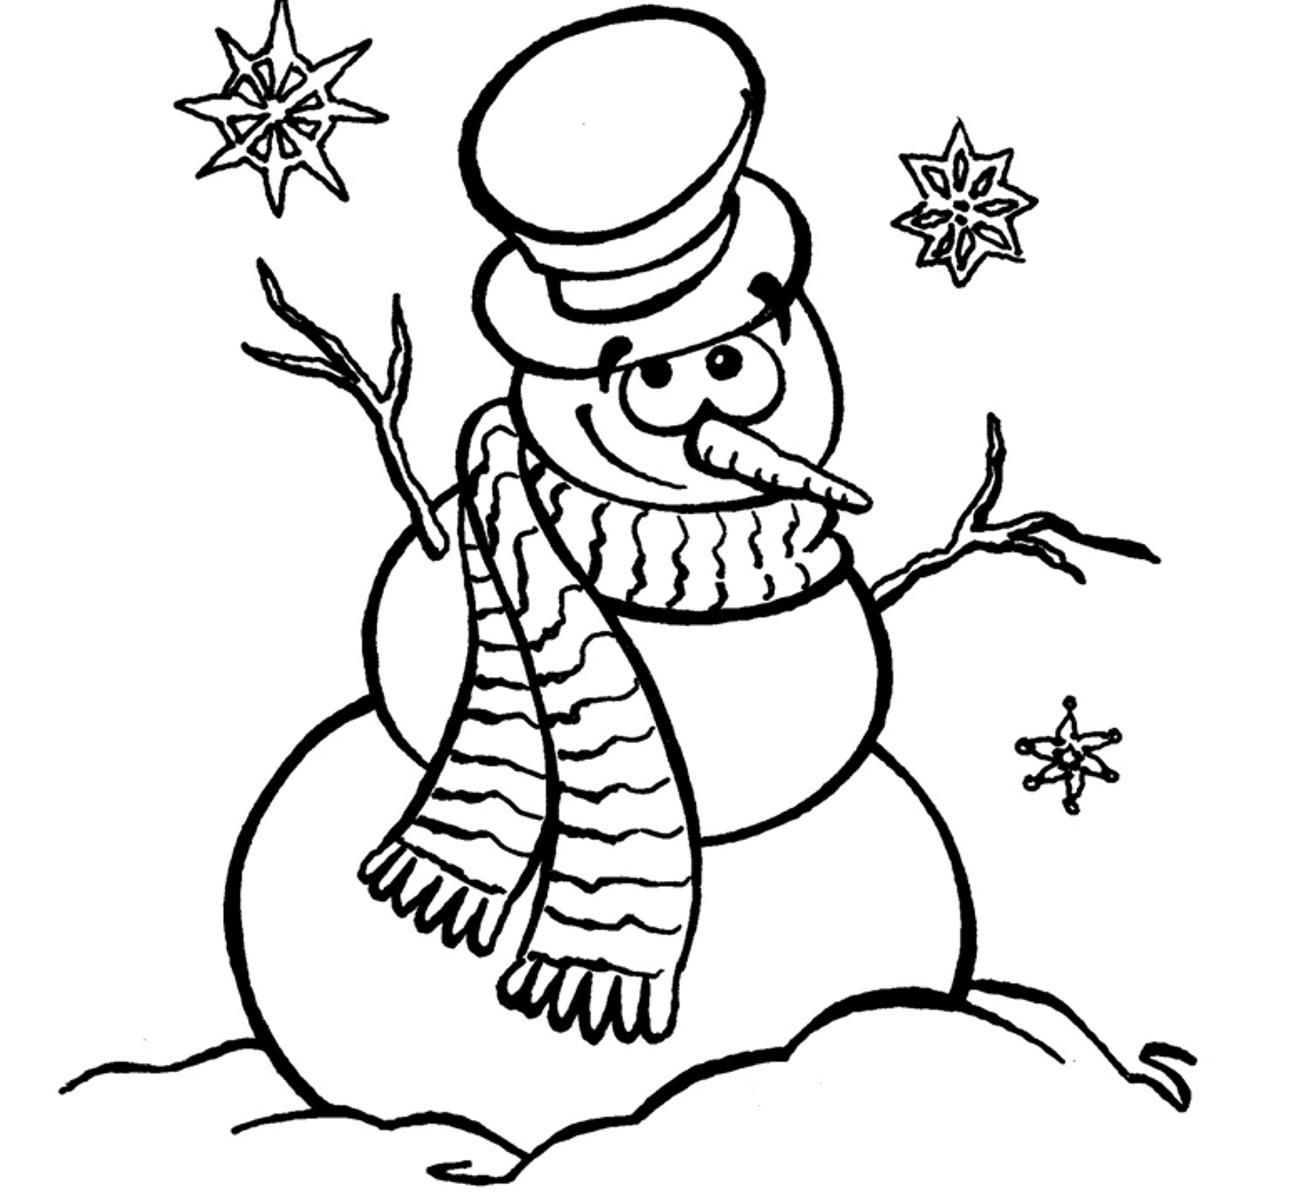 Frosty coloring page coloring home for Coloring pages of snowman